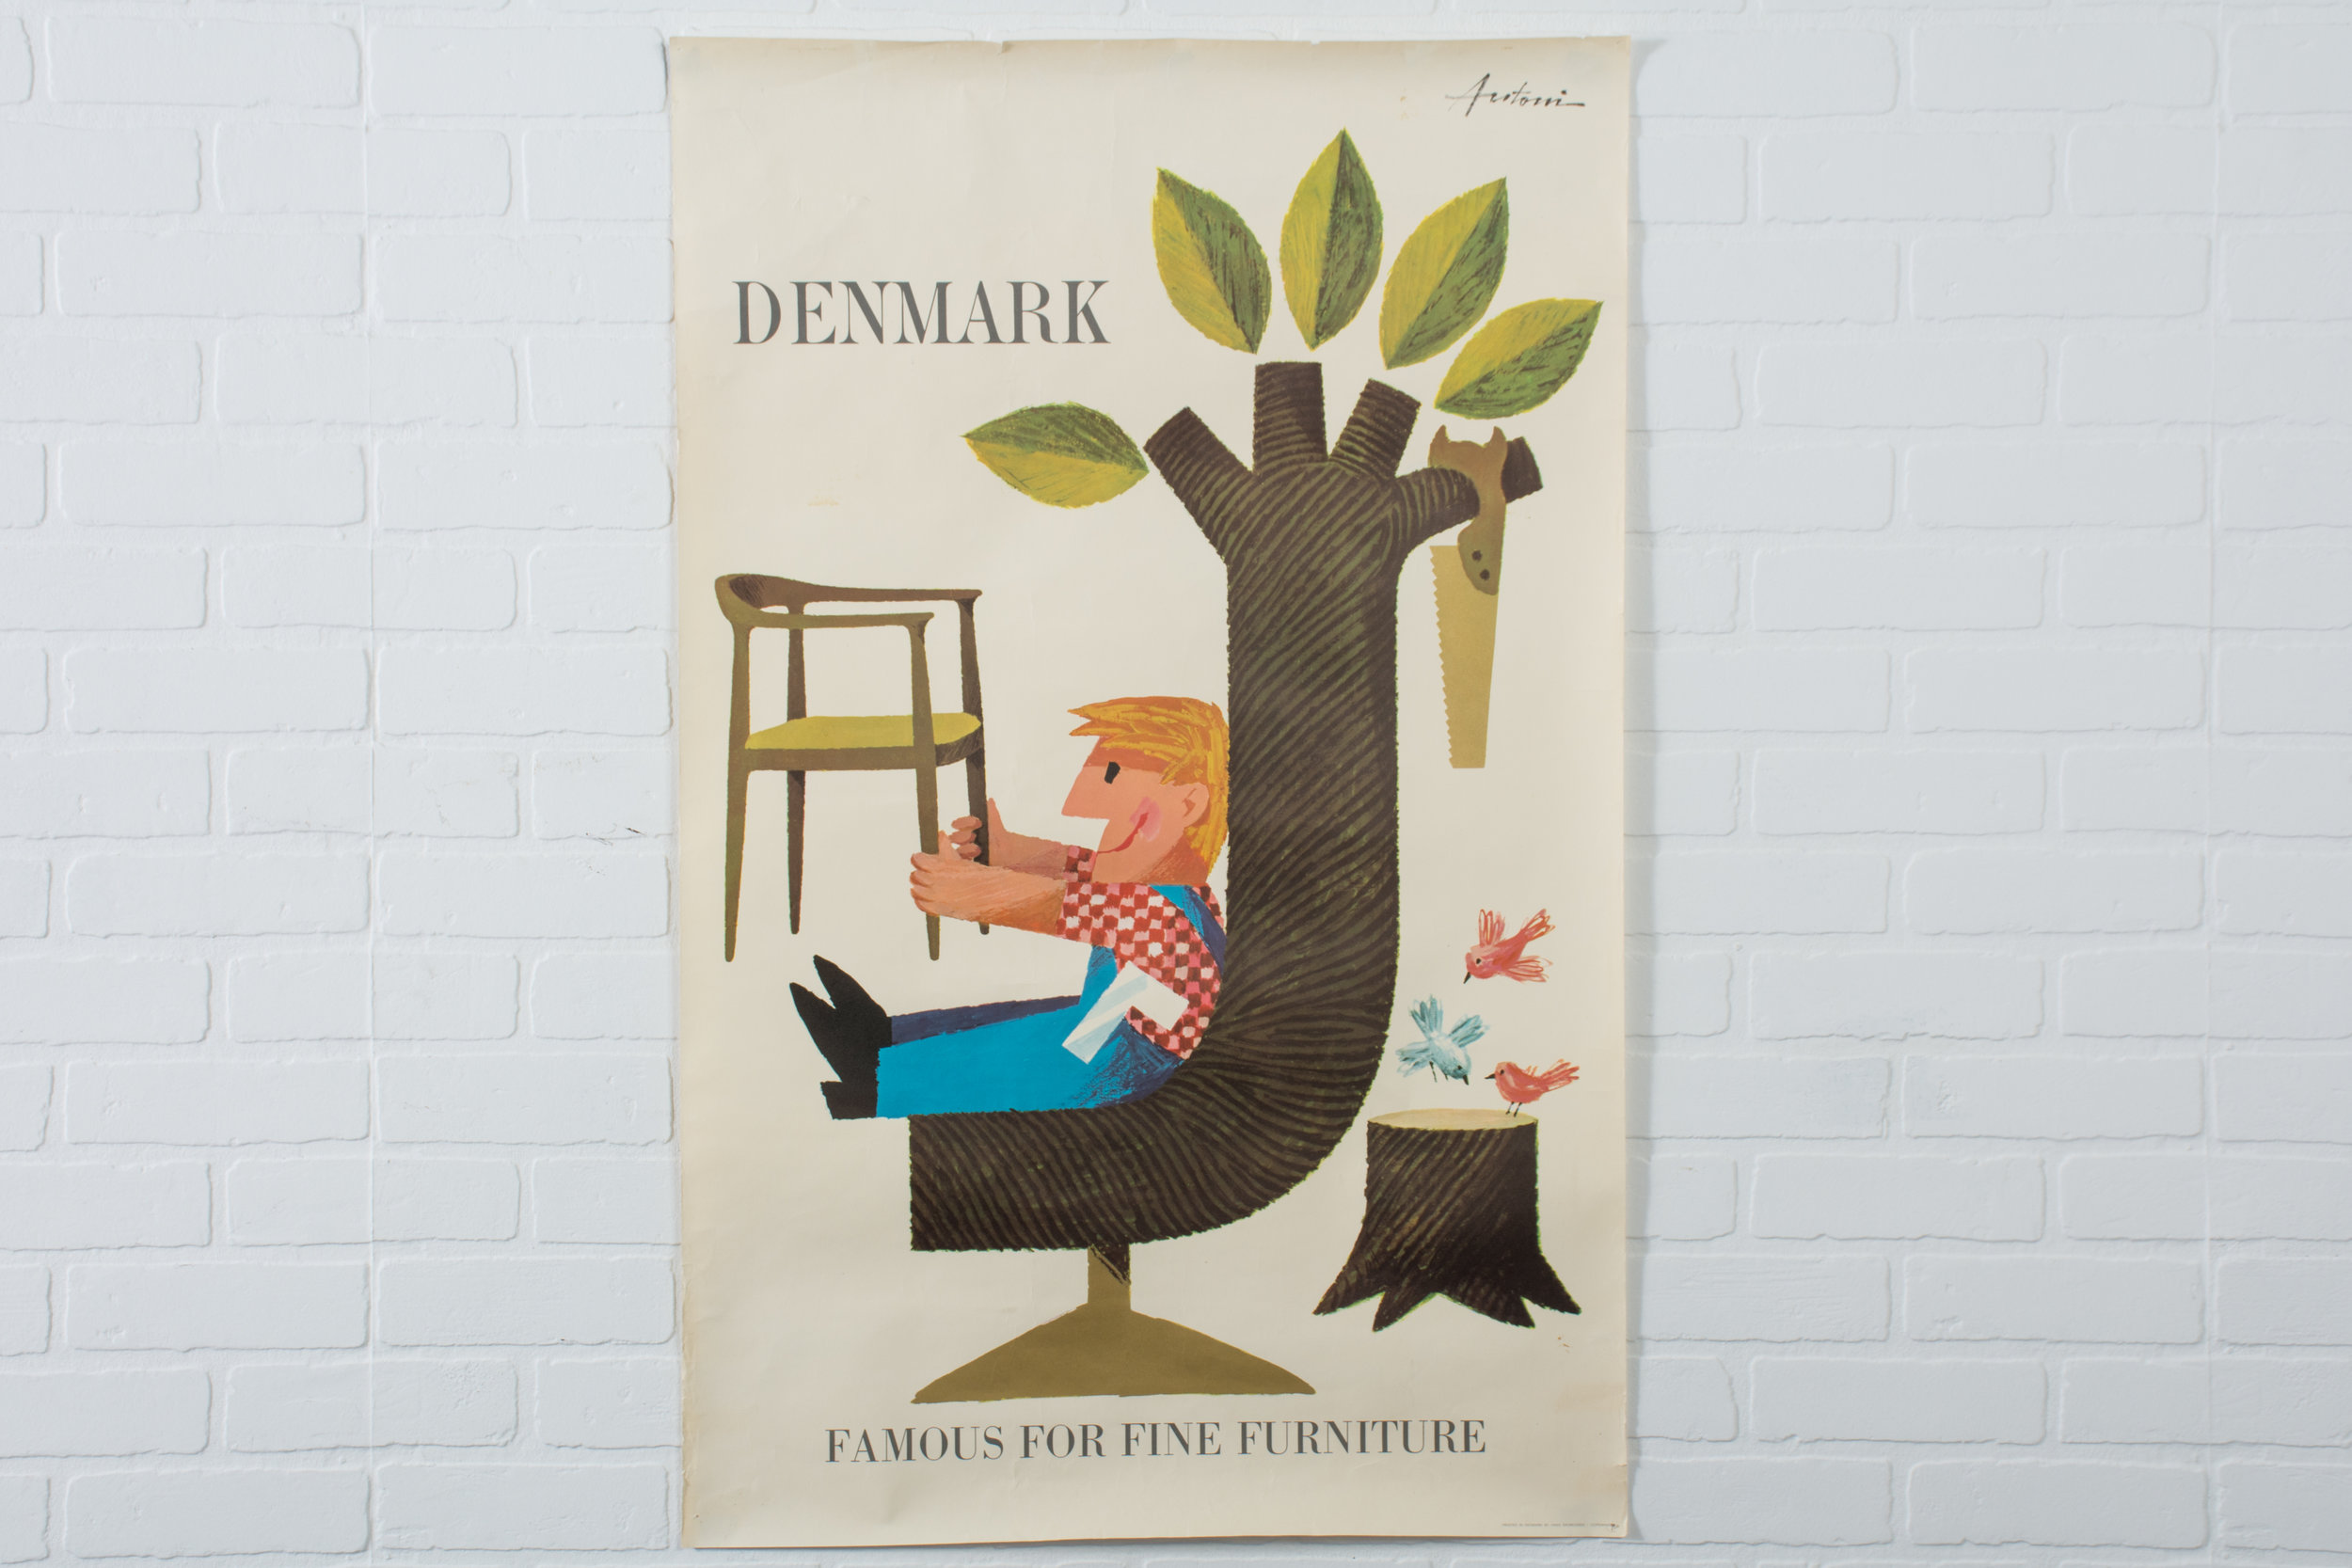 Copy of Vintage Mid-Century Danish Poster by Ib Antoni